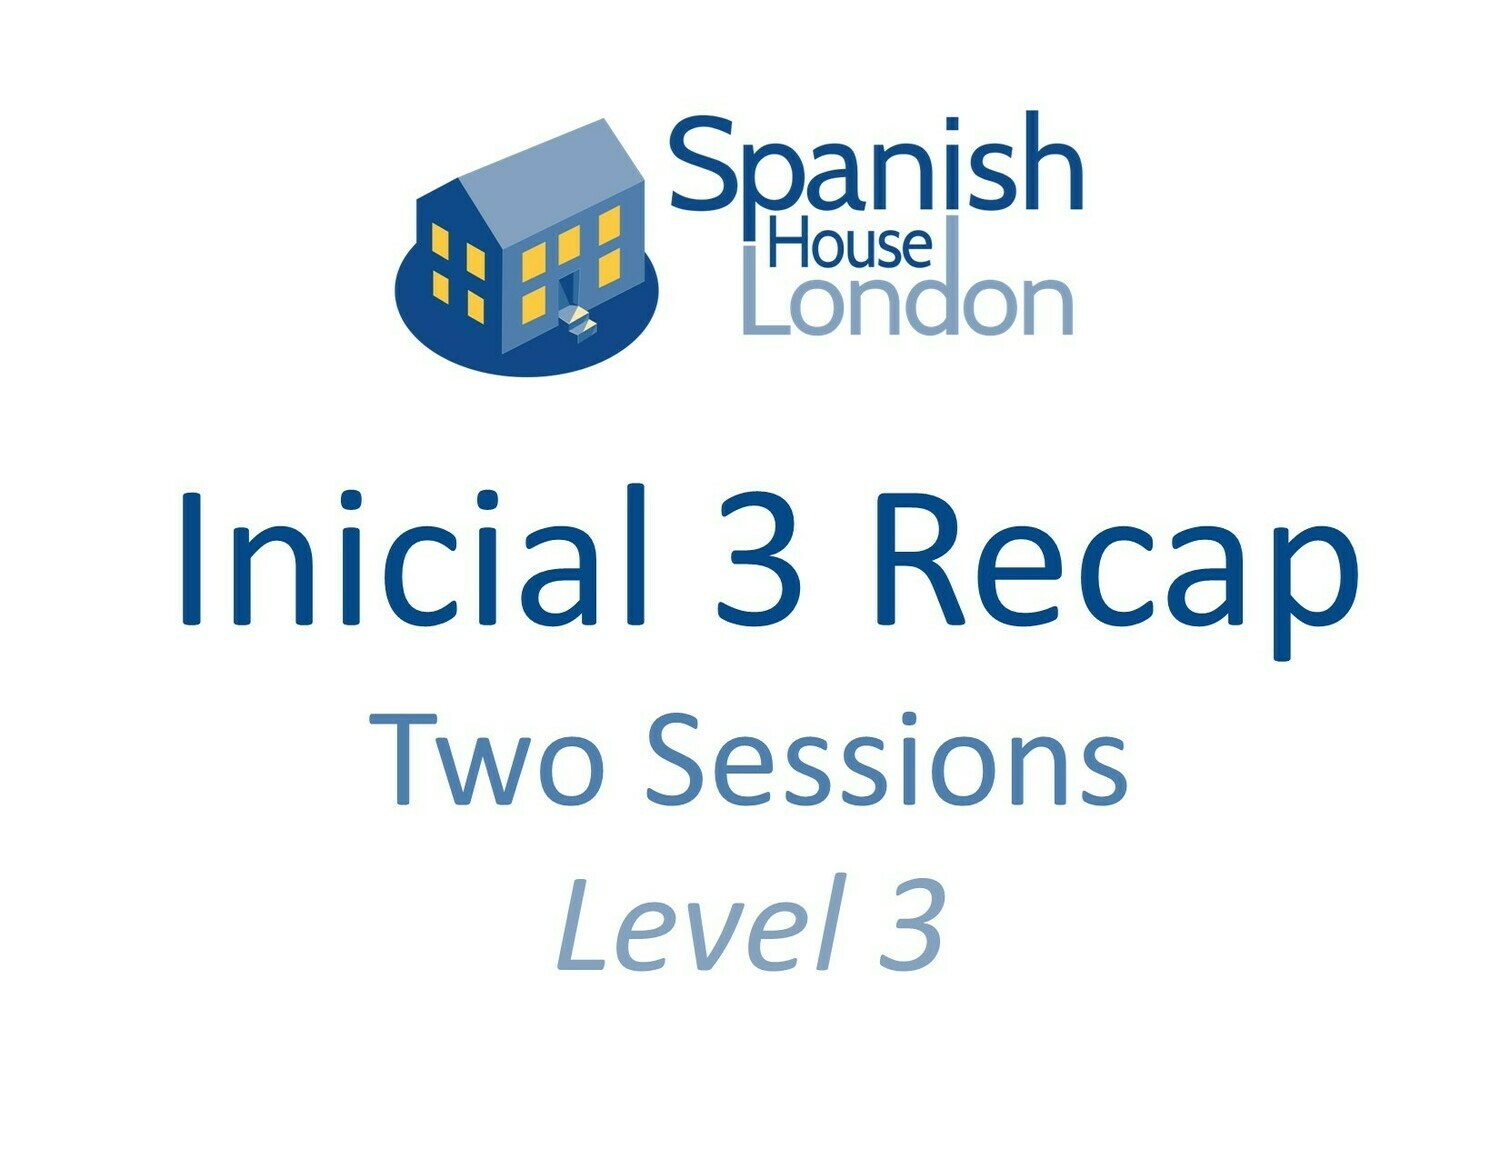 Inicial 3 Recap Sessions - 26th May & 2nd June